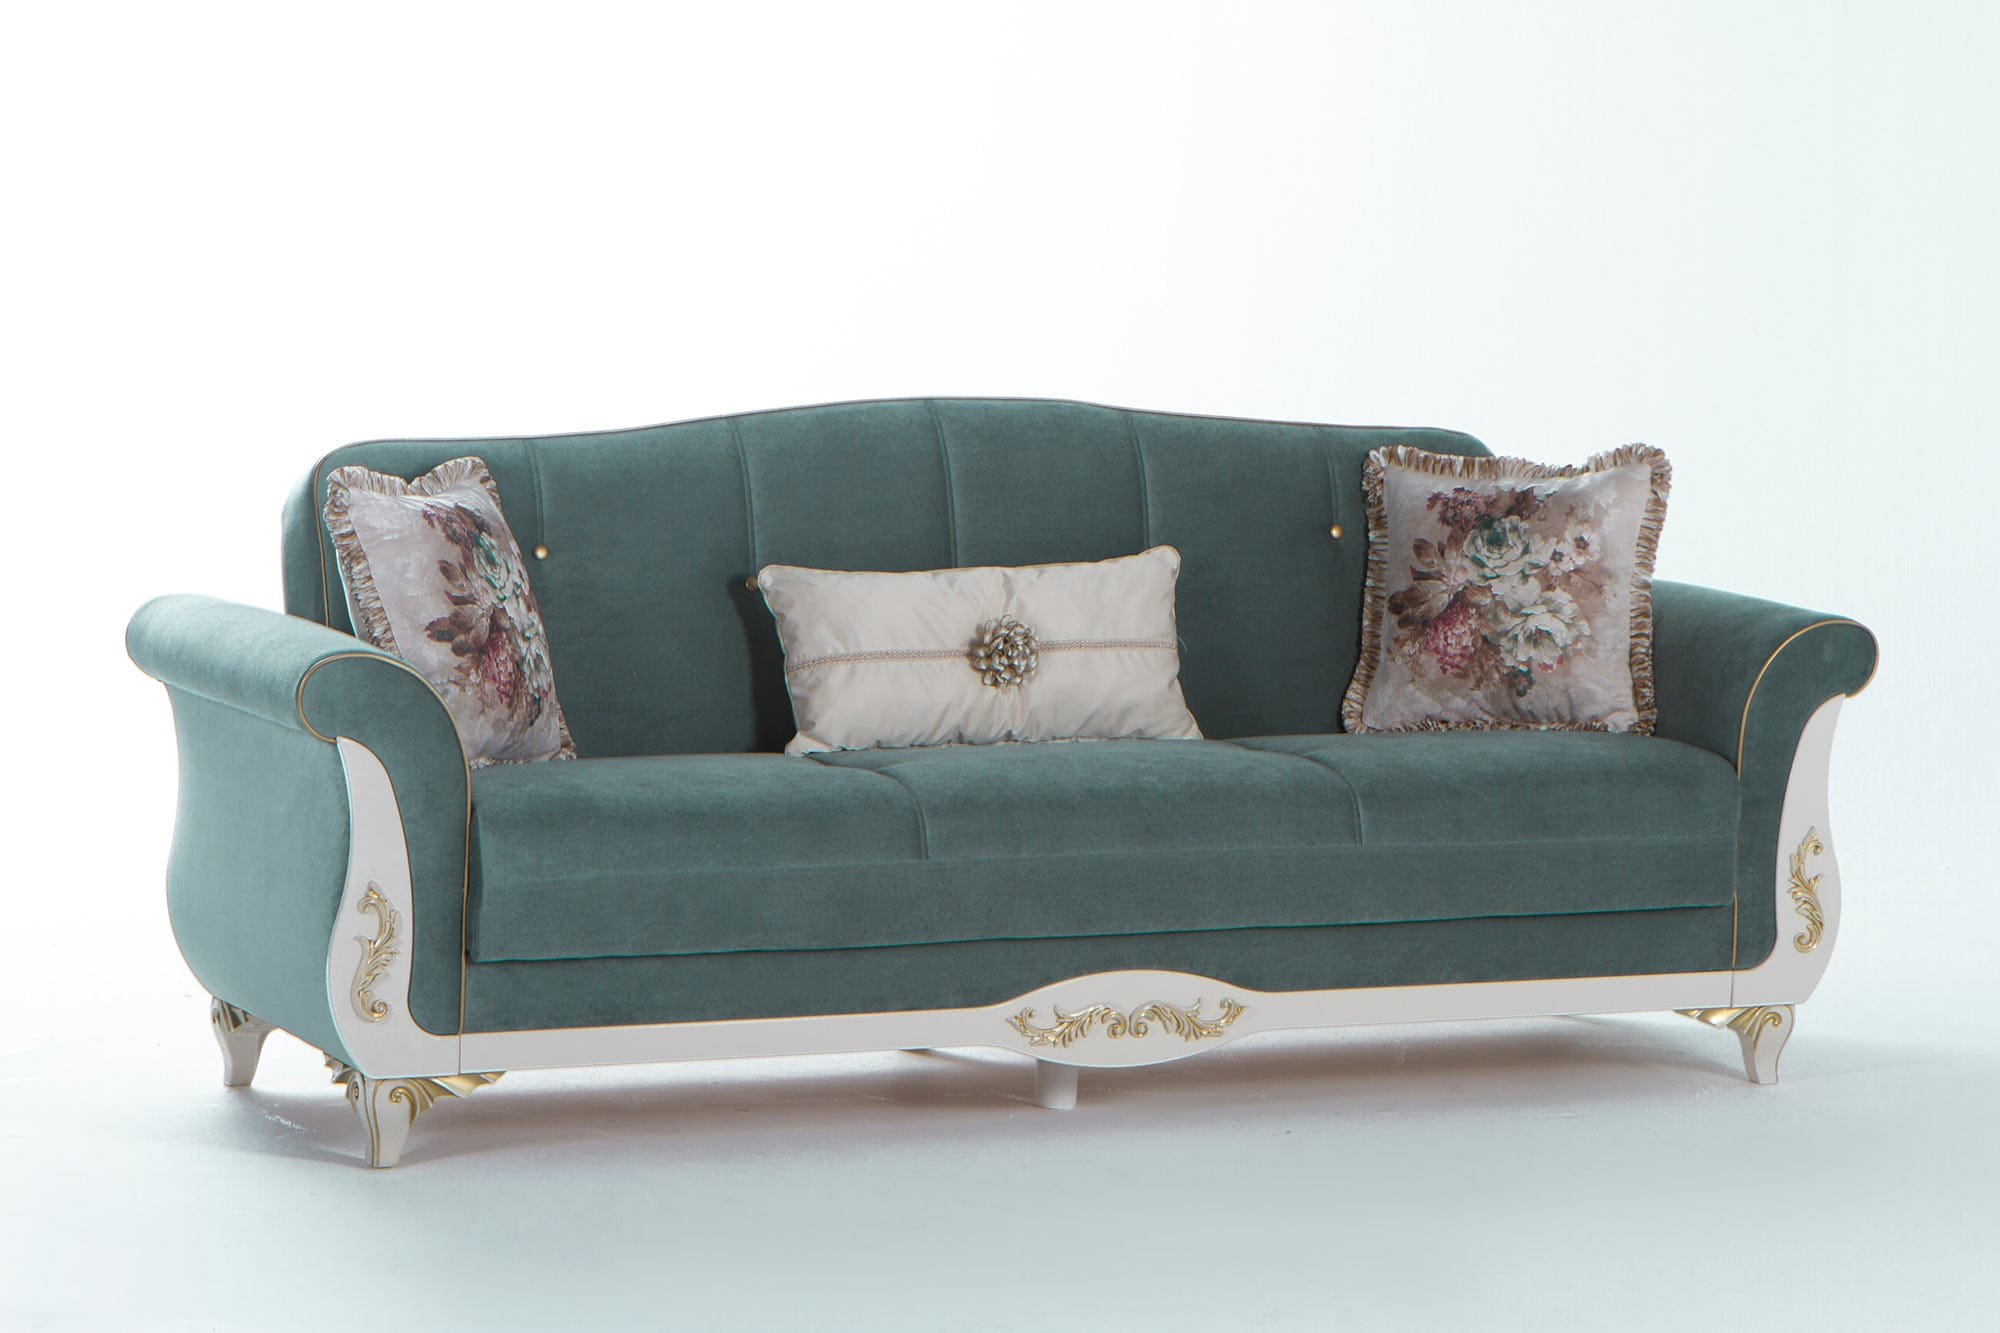 Seafoam Green Home Decor Seafoam Green Sofa Ashley 2820038 Daystar Seafoam Sofa In